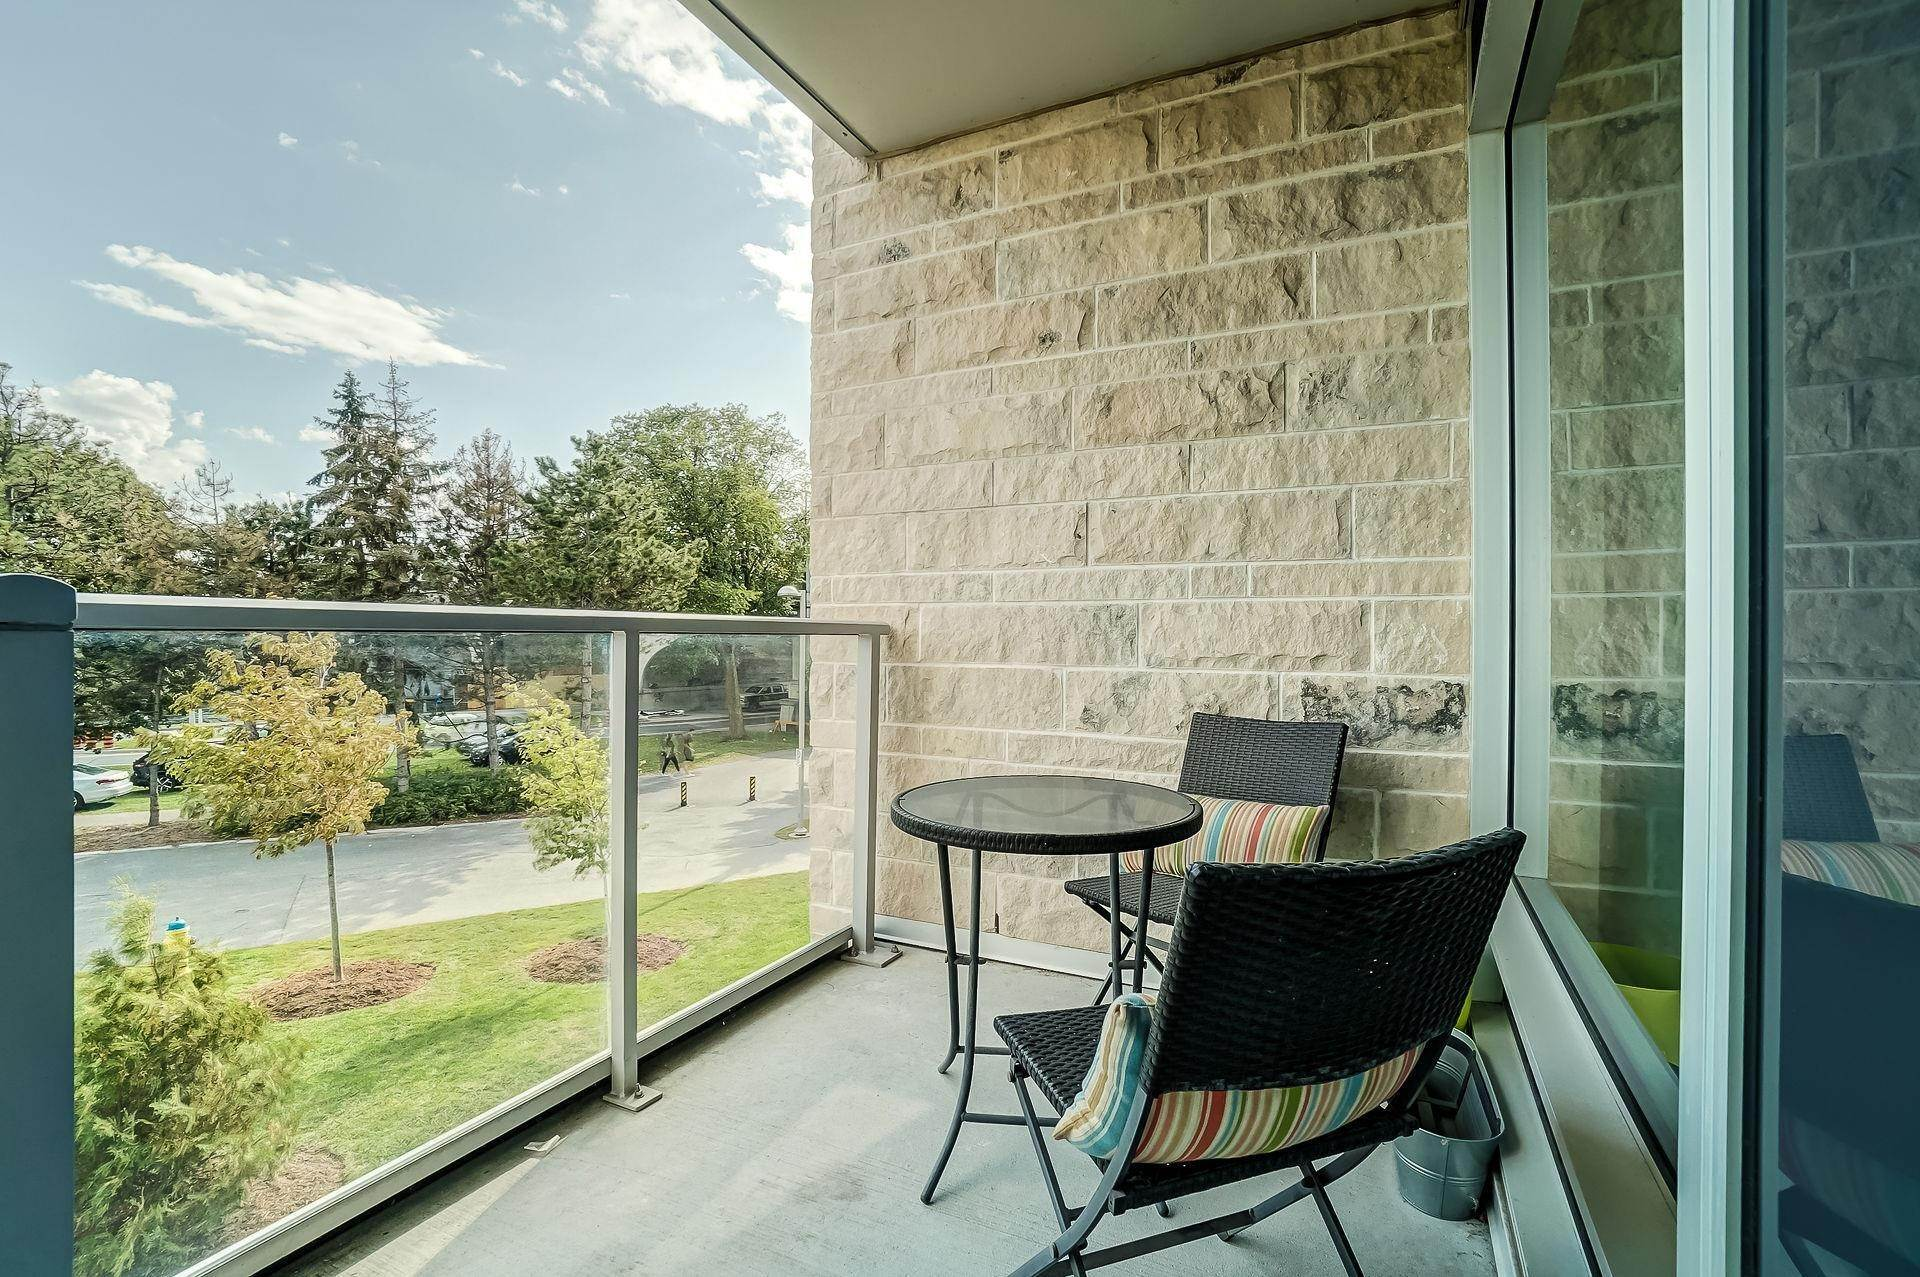 18. Townhome / Condominium for Sale at 2-Storey Townhome 1035 Bank Street Ottawa, Ontario,K1S 5K3 Canada